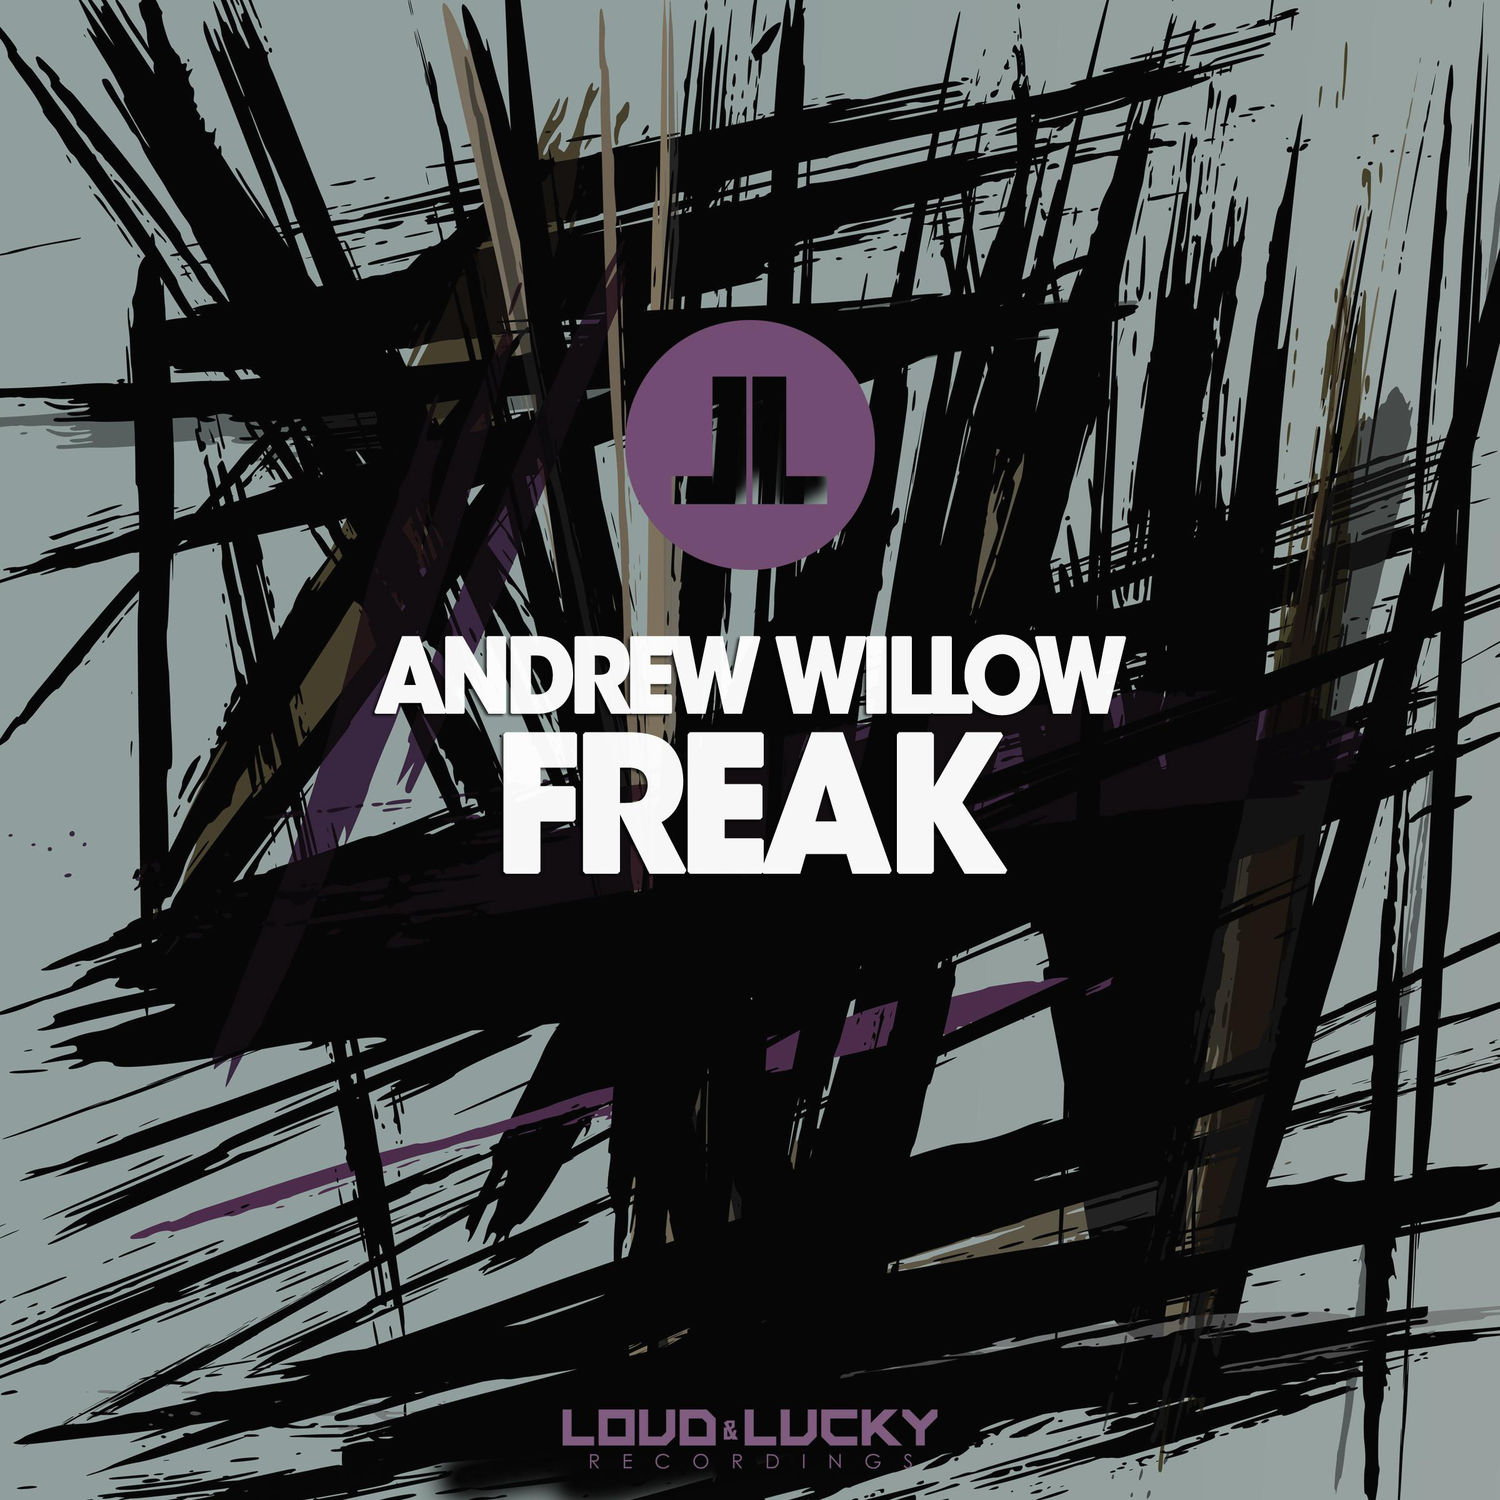 Andrew Willow - Freak - Single [LLR 015]